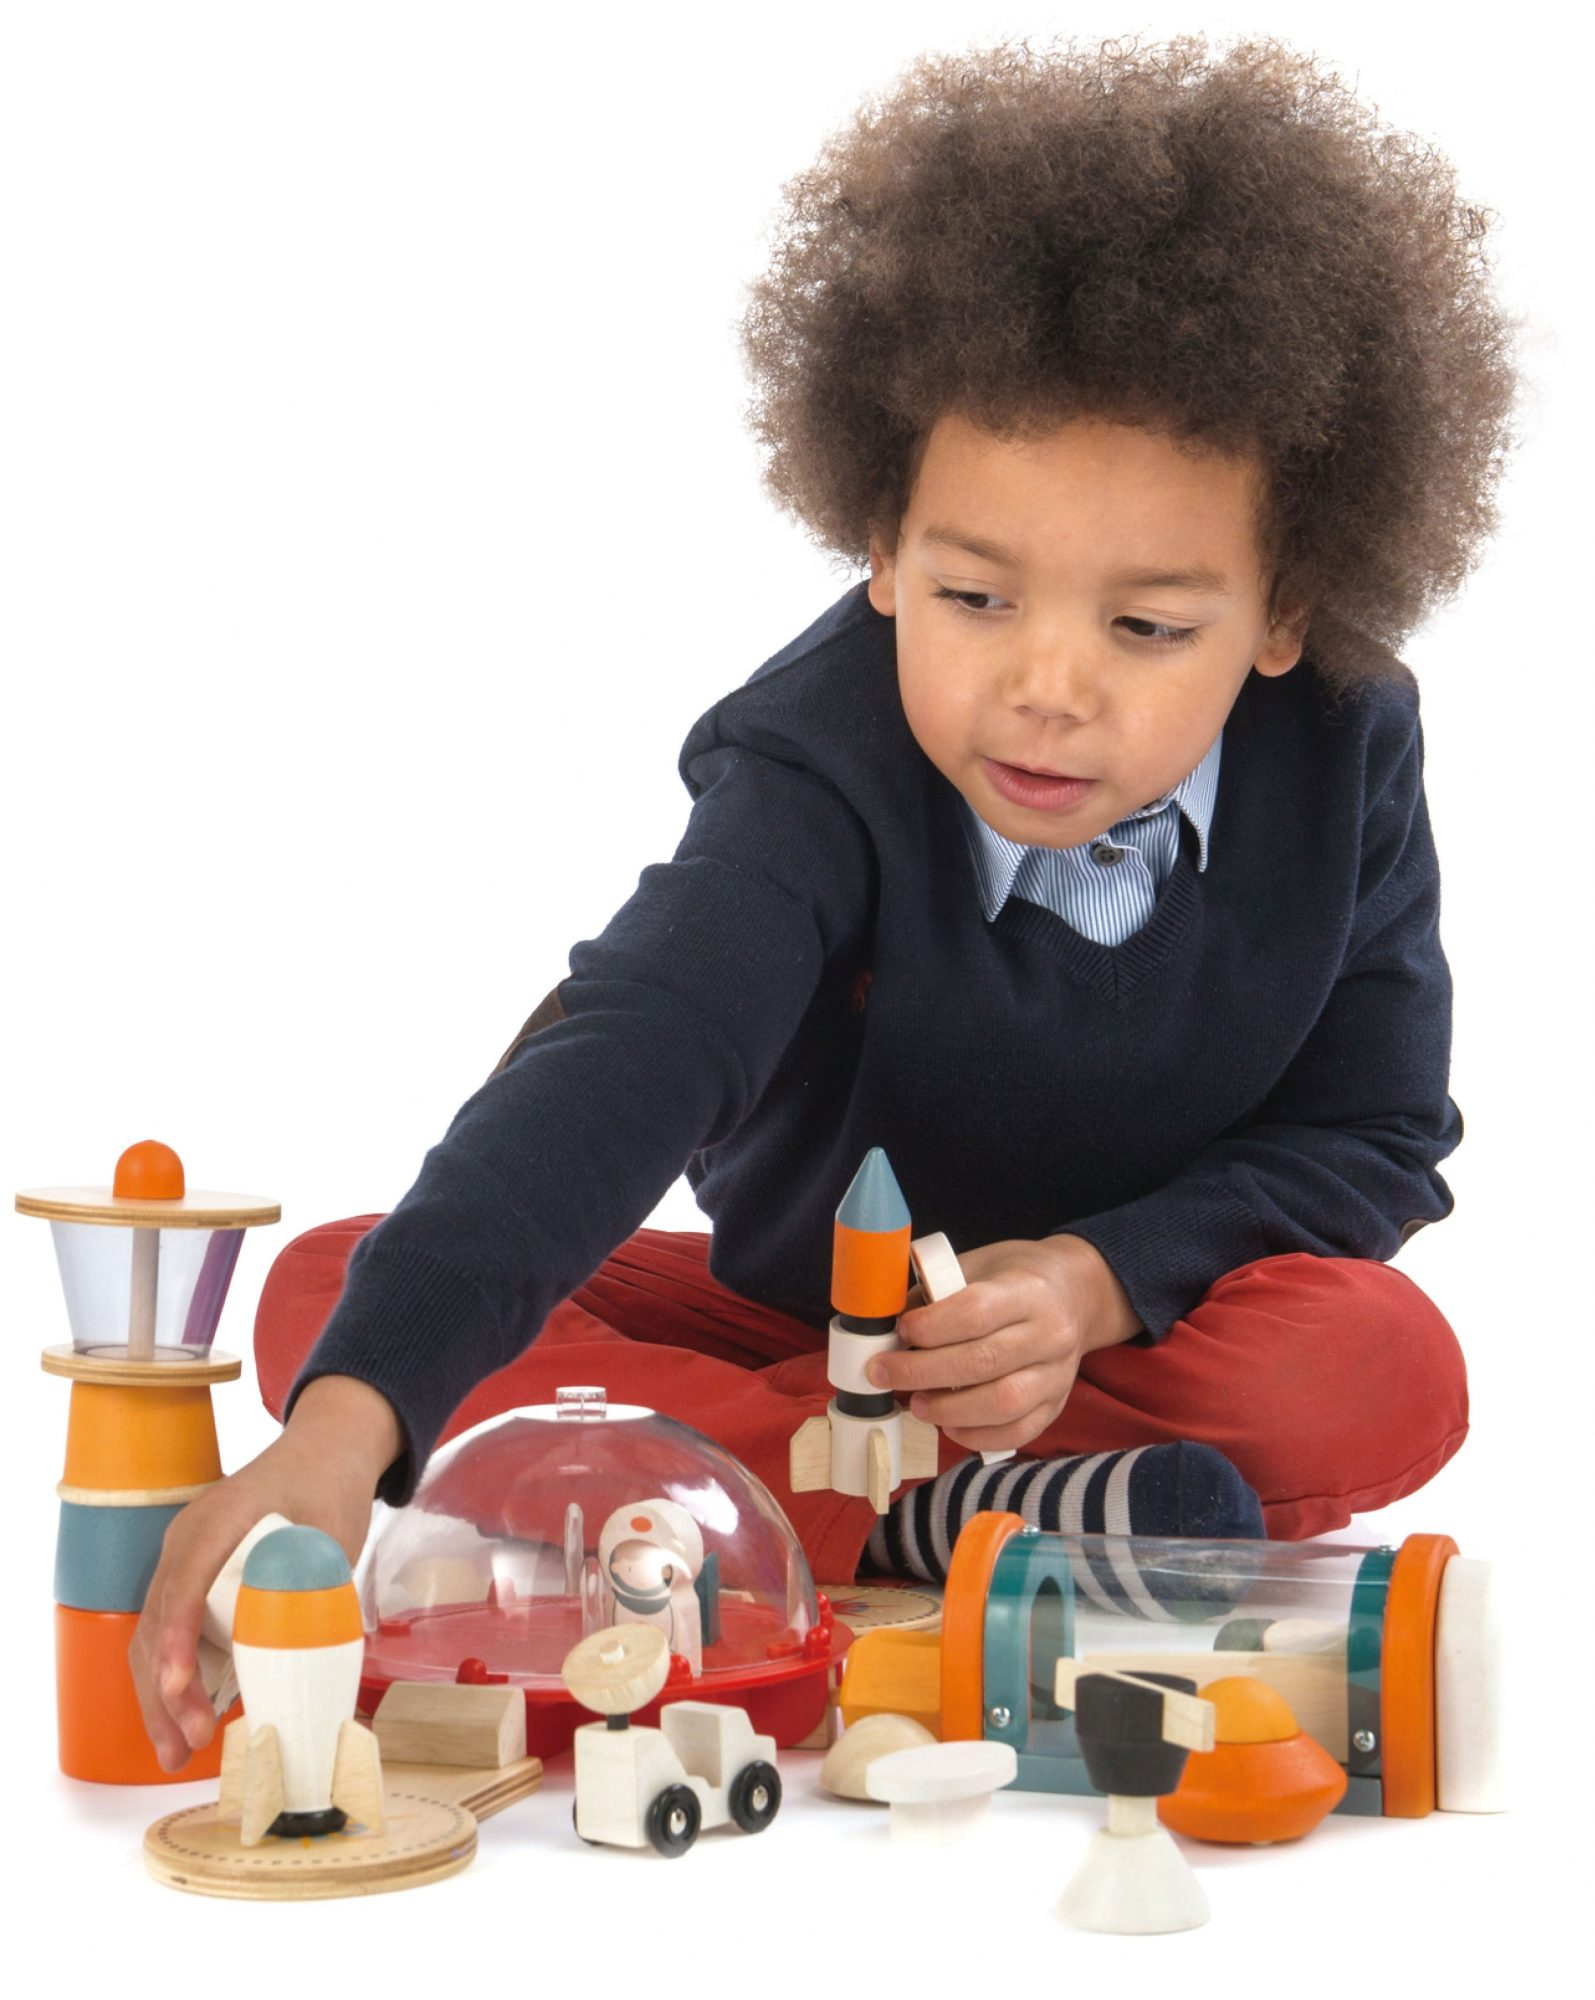 child playing with toy set